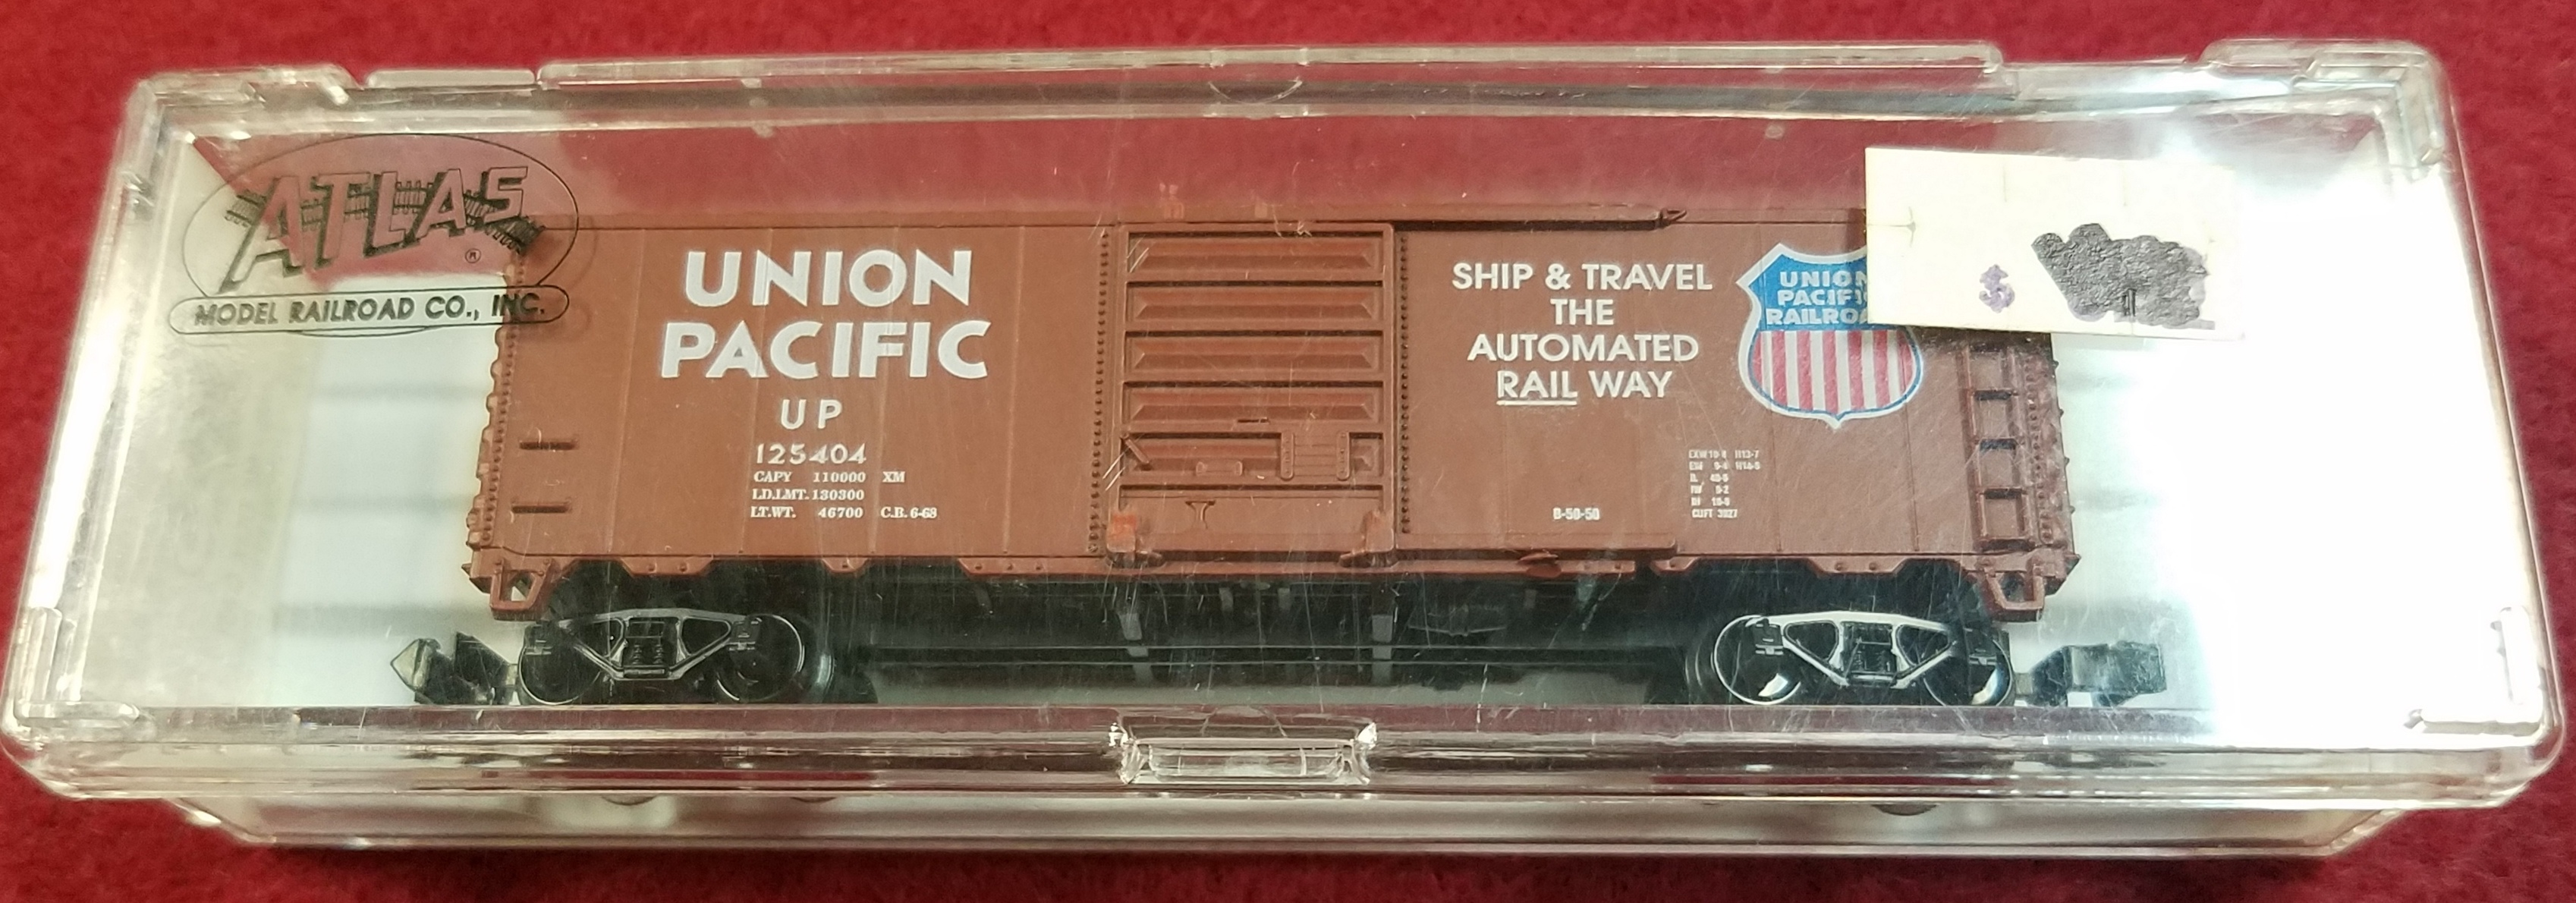 ATLAS - N SCALE - UP 125404 - 3440 40' BOX CAR - UNION PACIFIC RAILWAY